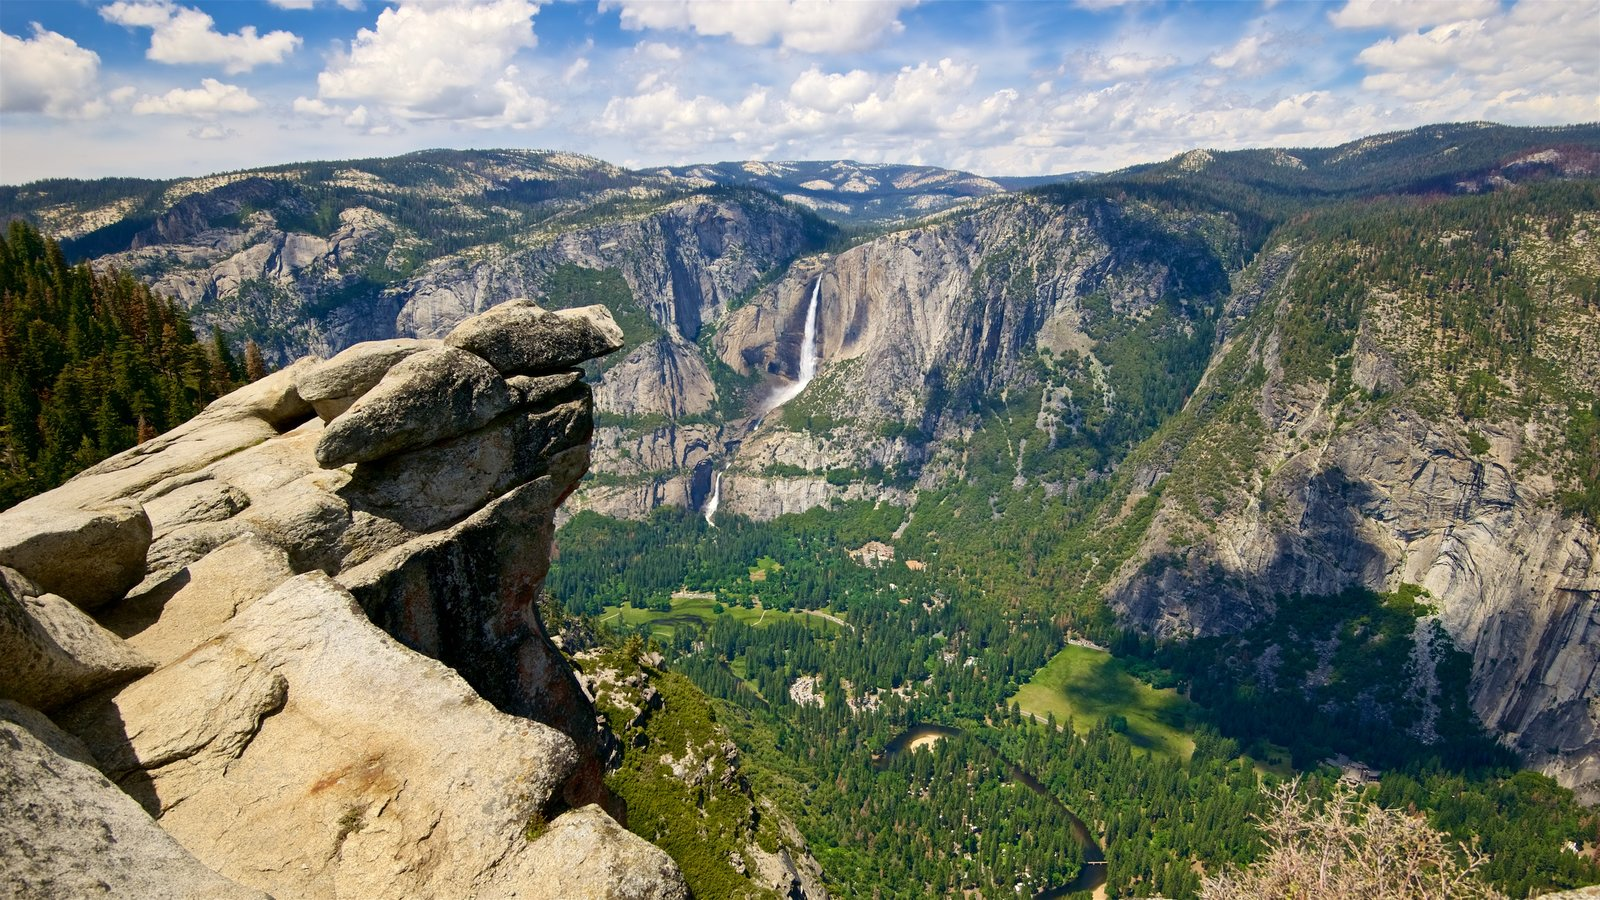 Glacier Point featuring forest scenes, landscape views and a gorge or canyon